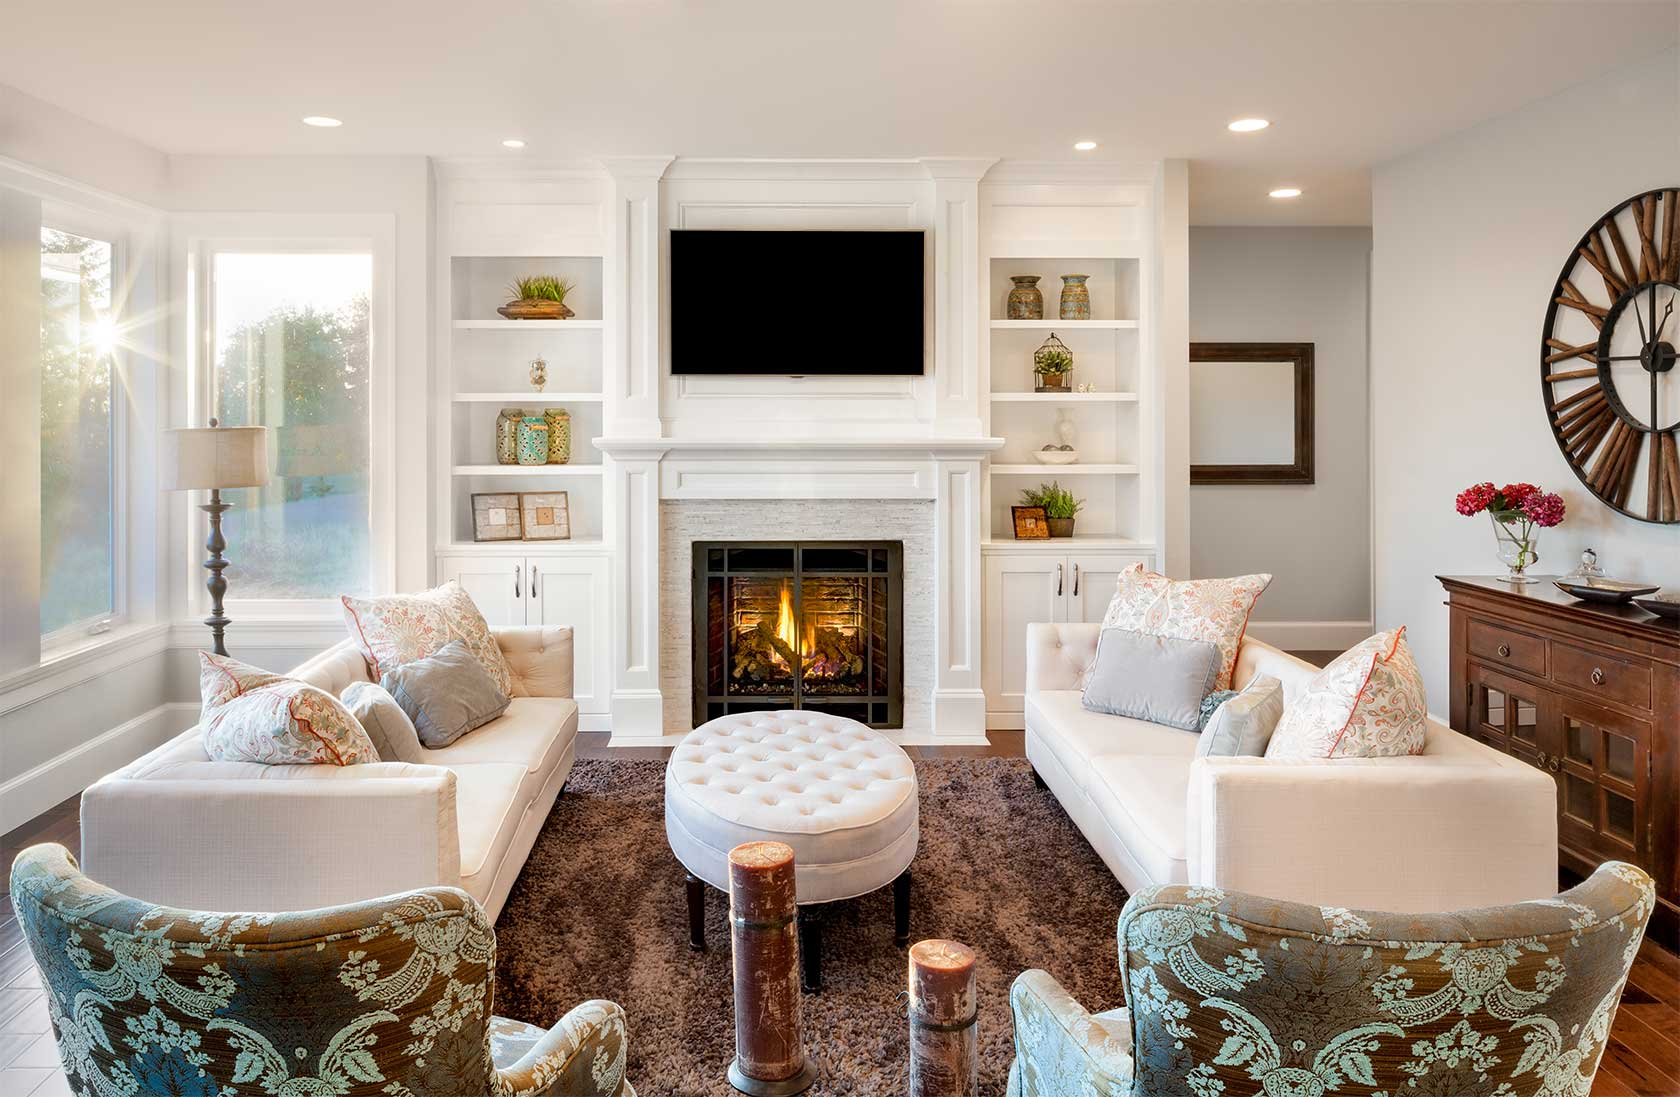 Living Room Heating System